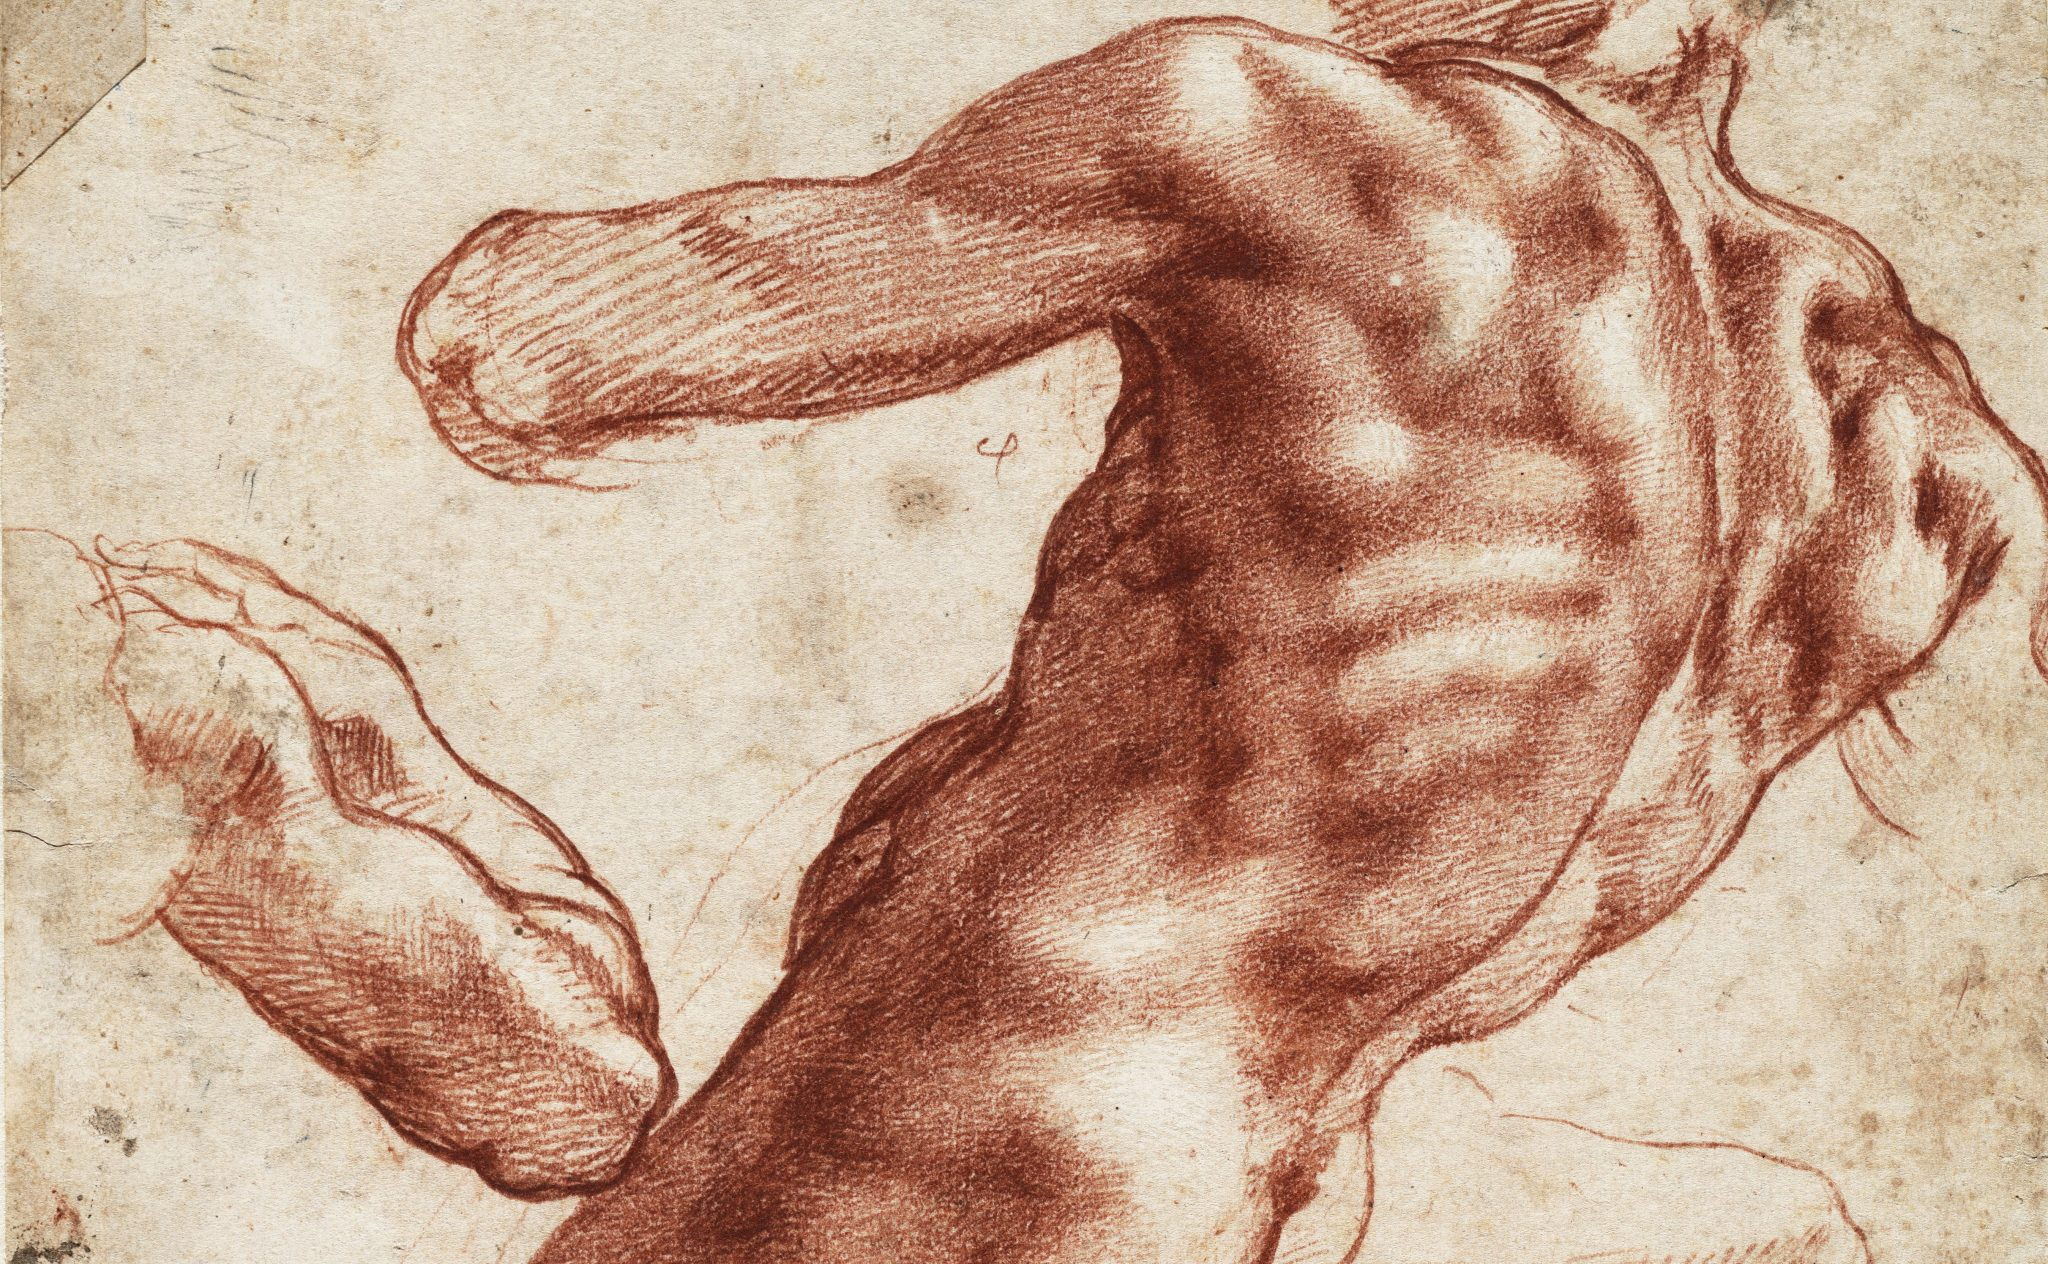 Michelangelo: Mind of the Master, Cleveland Museum of Art